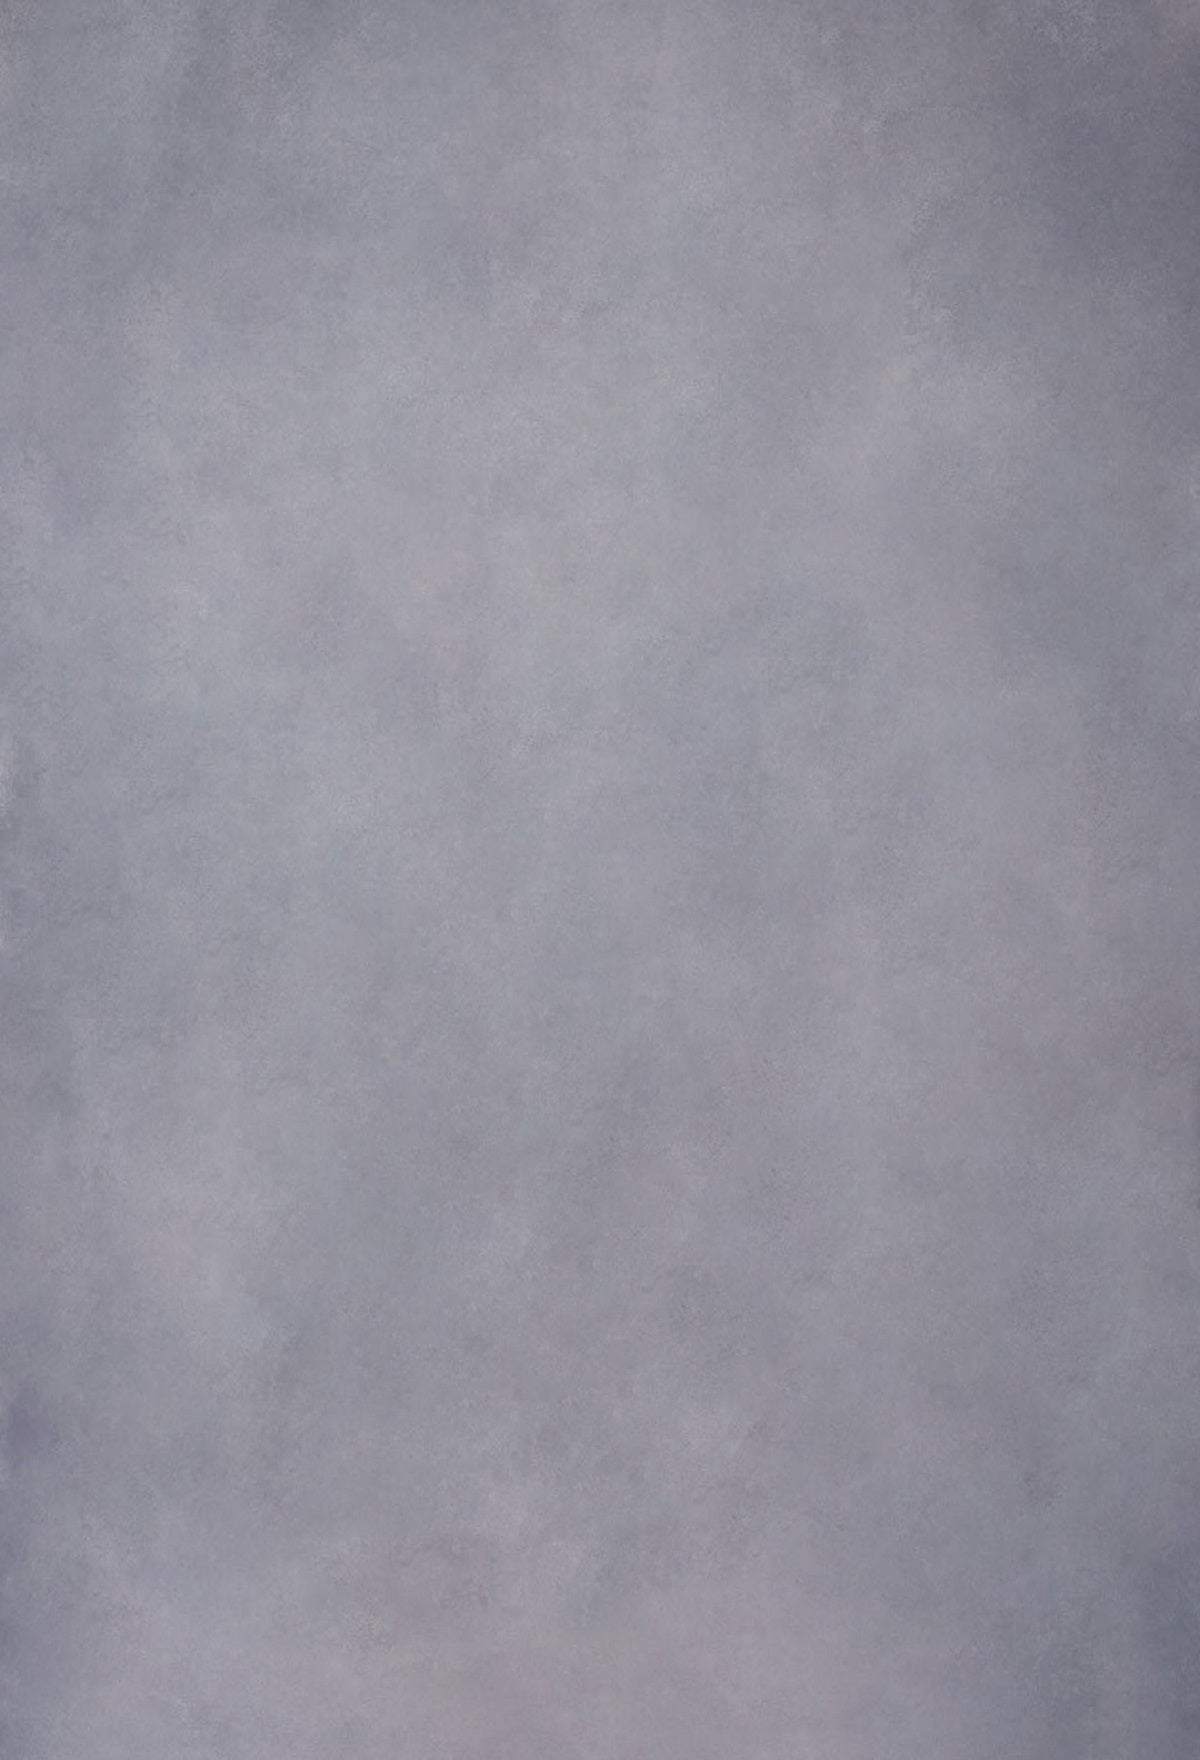 Clotstudio Abstract Gray Purple Spray Textured Hand Painted Canvas Backdrop #clot 63